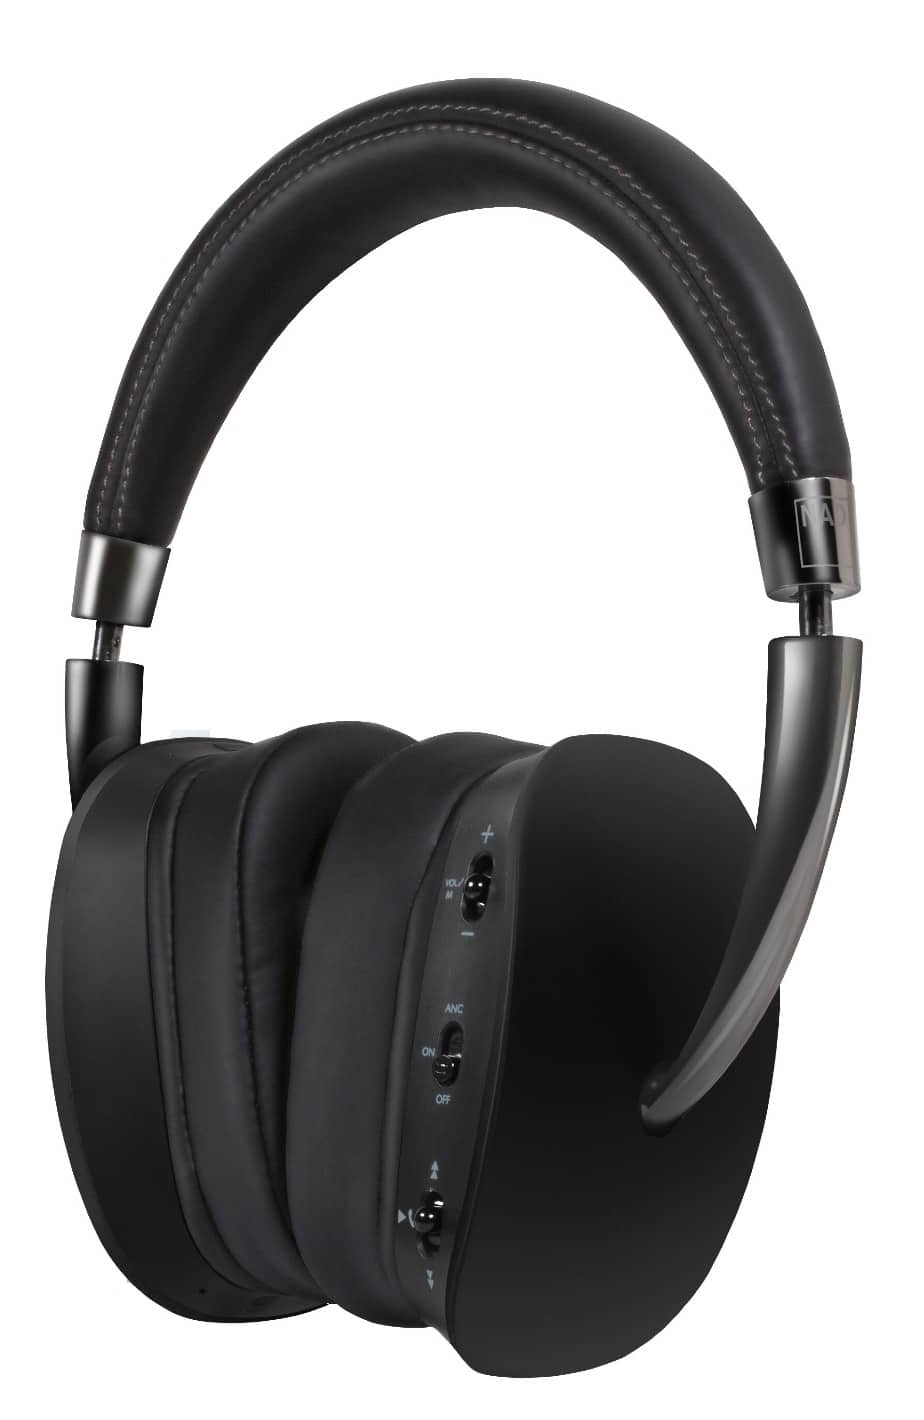 HP70 VISO Headphones From NAD: Wireless, Active Noise-Cancelling